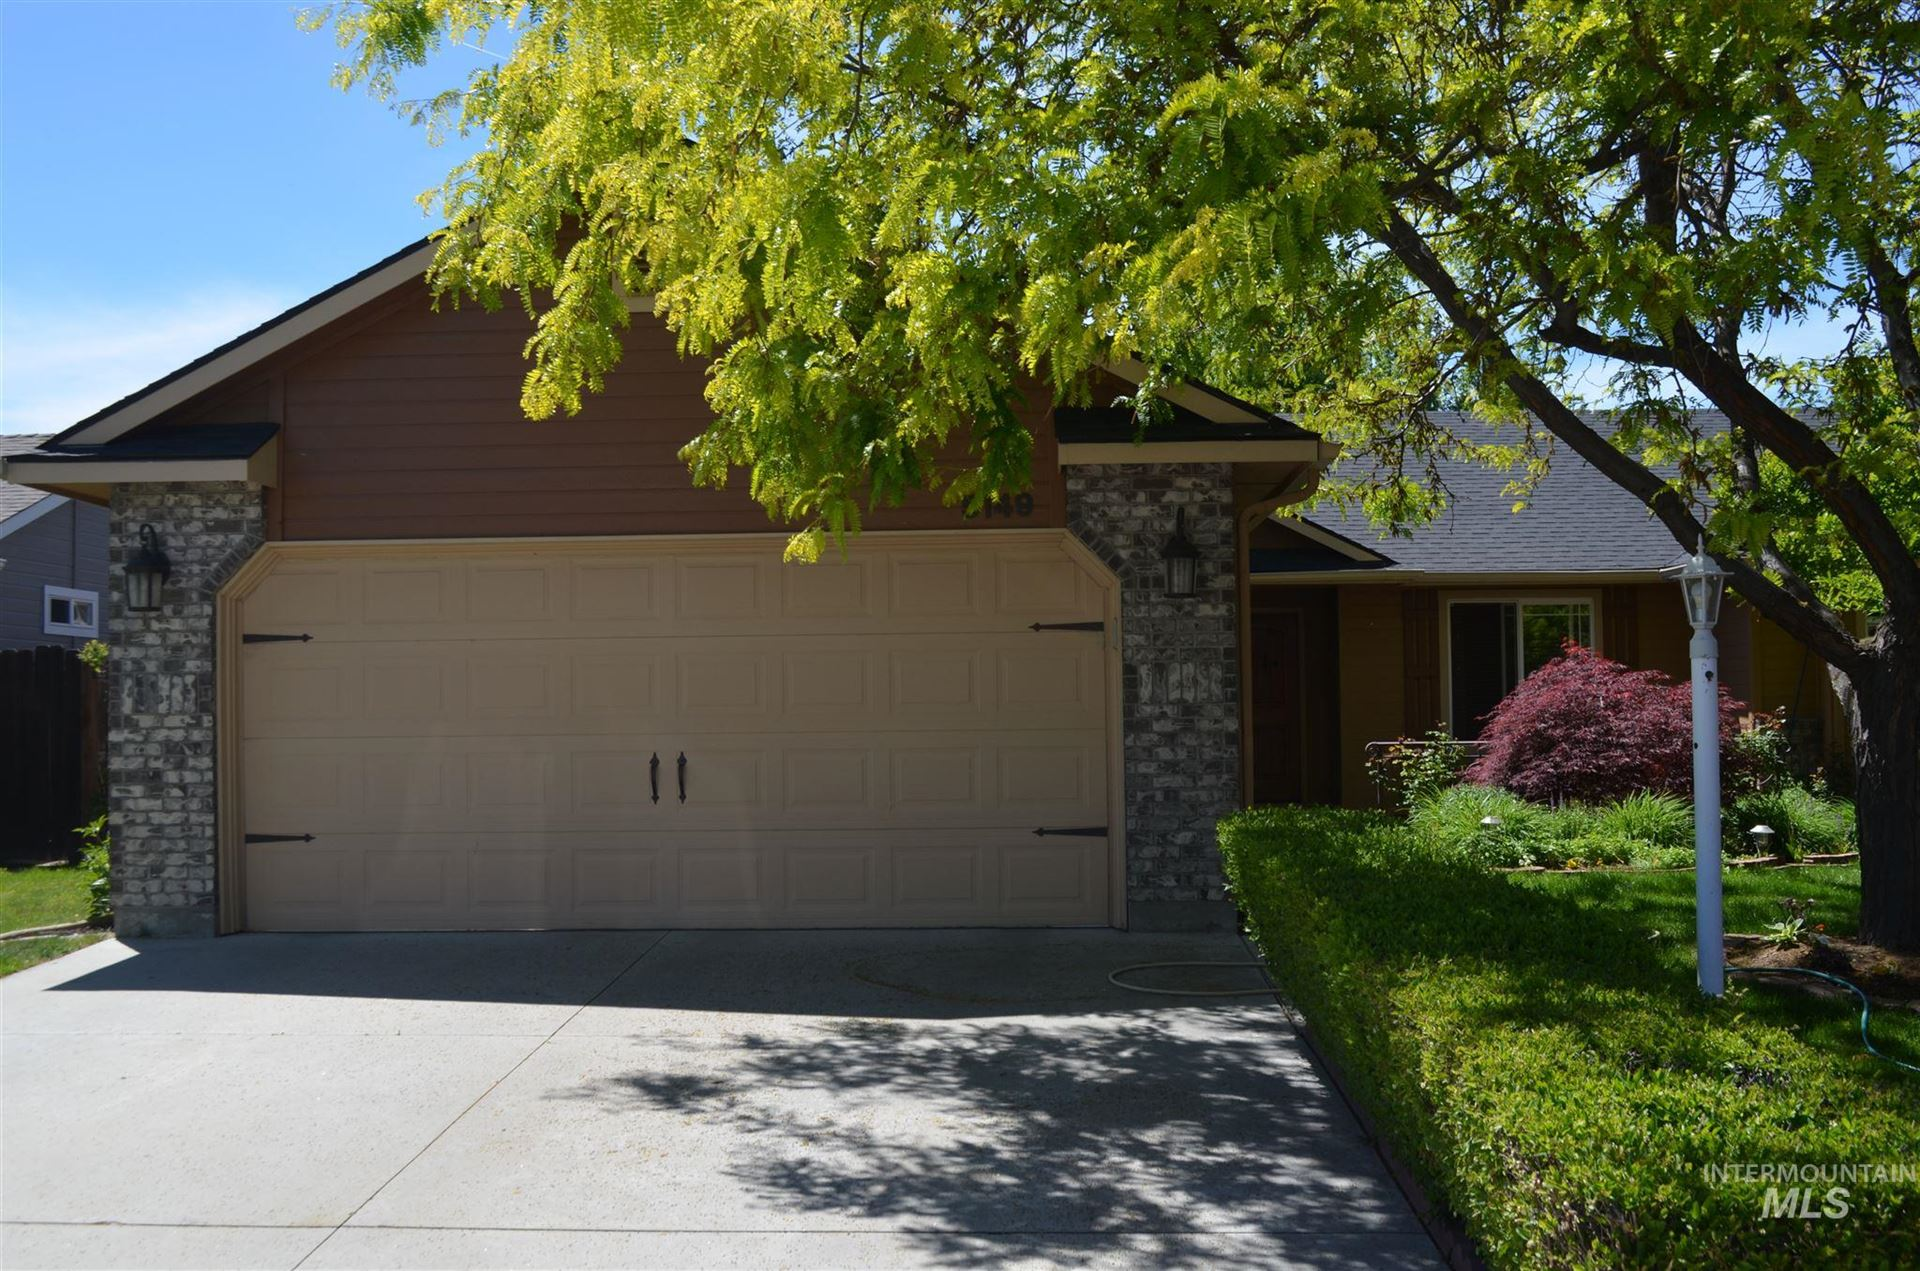 Photo of 5149 N Rothmans Ave, Boise, ID 83713 (MLS # 98768667)